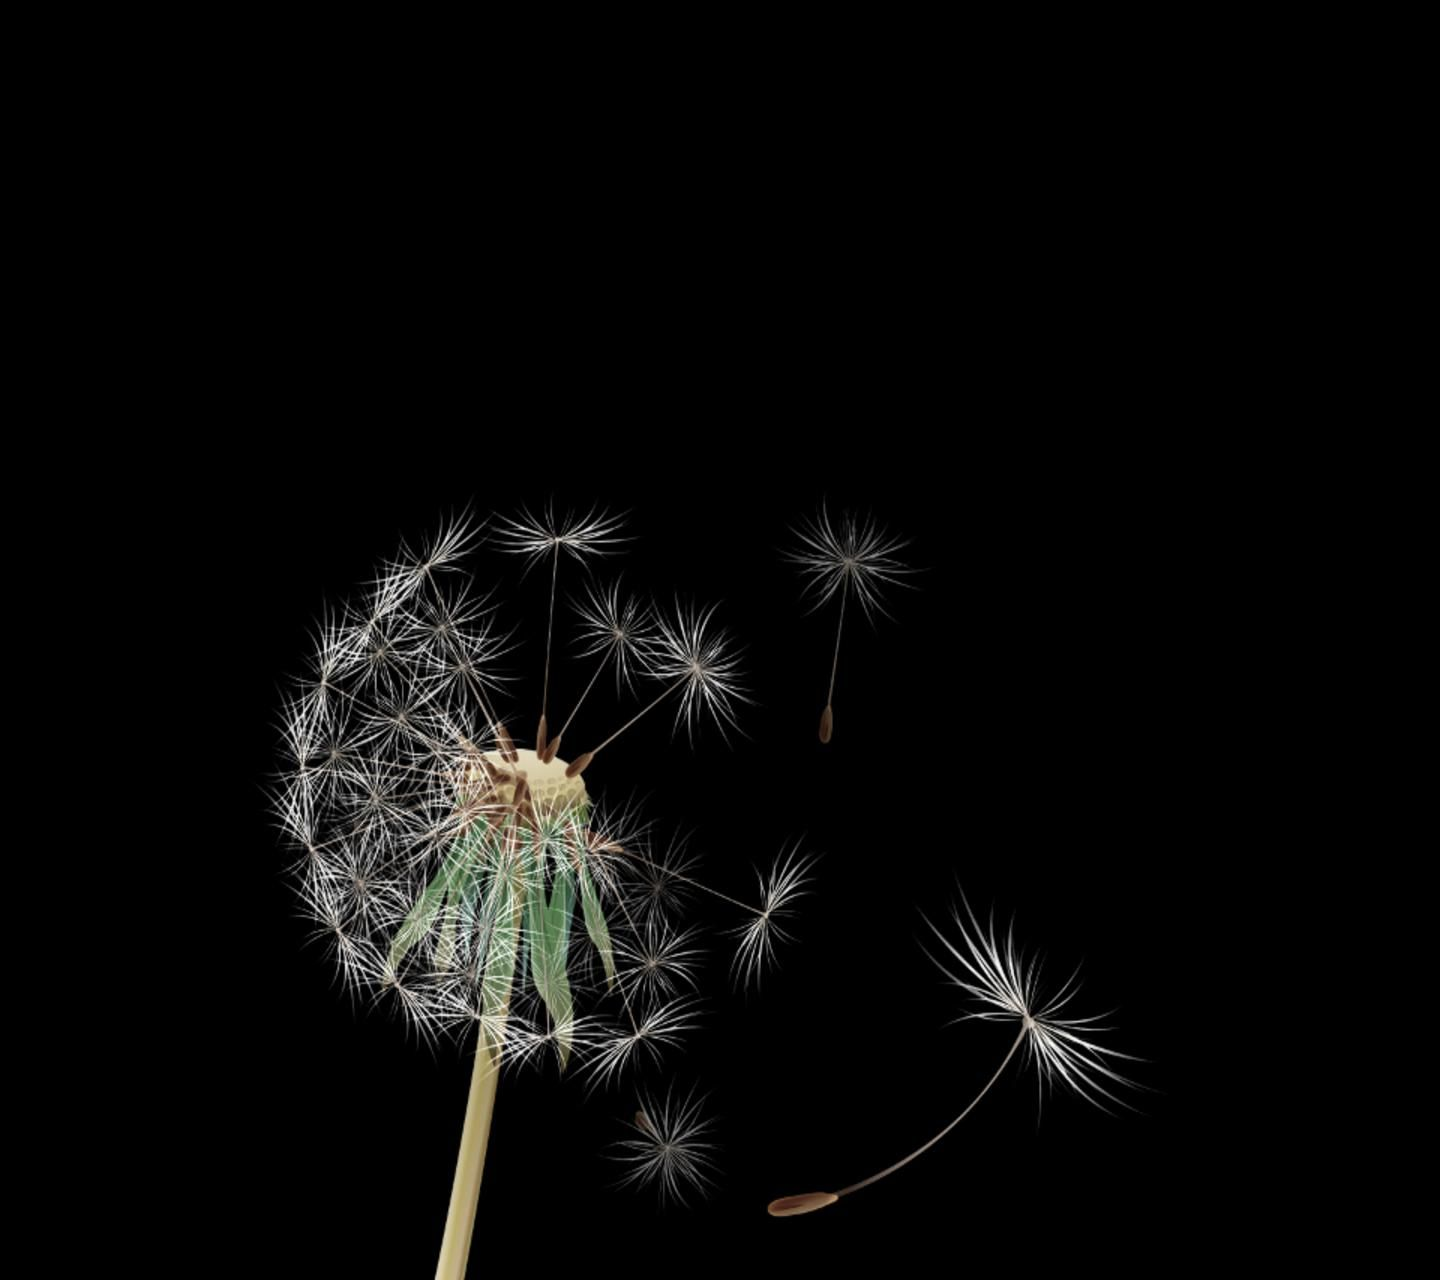 dandelion cell phone wallpaper quotes - photo #8